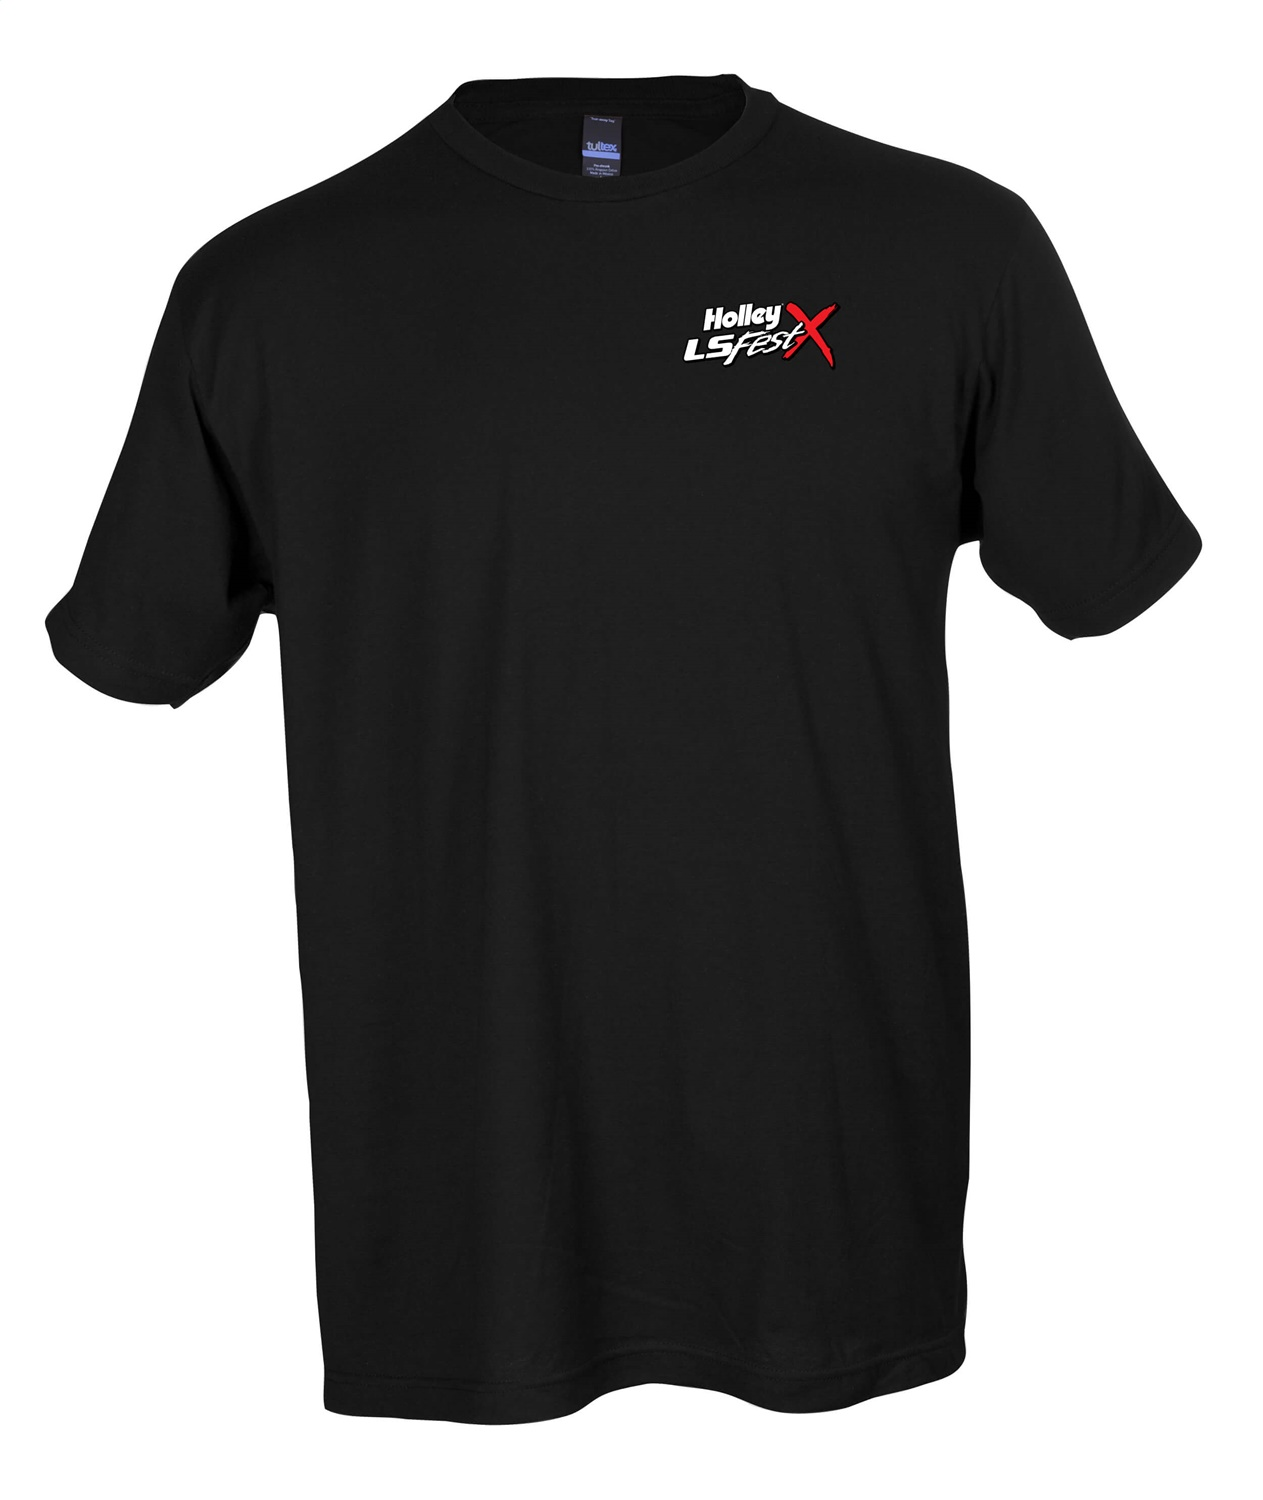 Holley Performance 10220-XLHOL Holley LS Fest 10 Year Anniversary Event T-Shirt